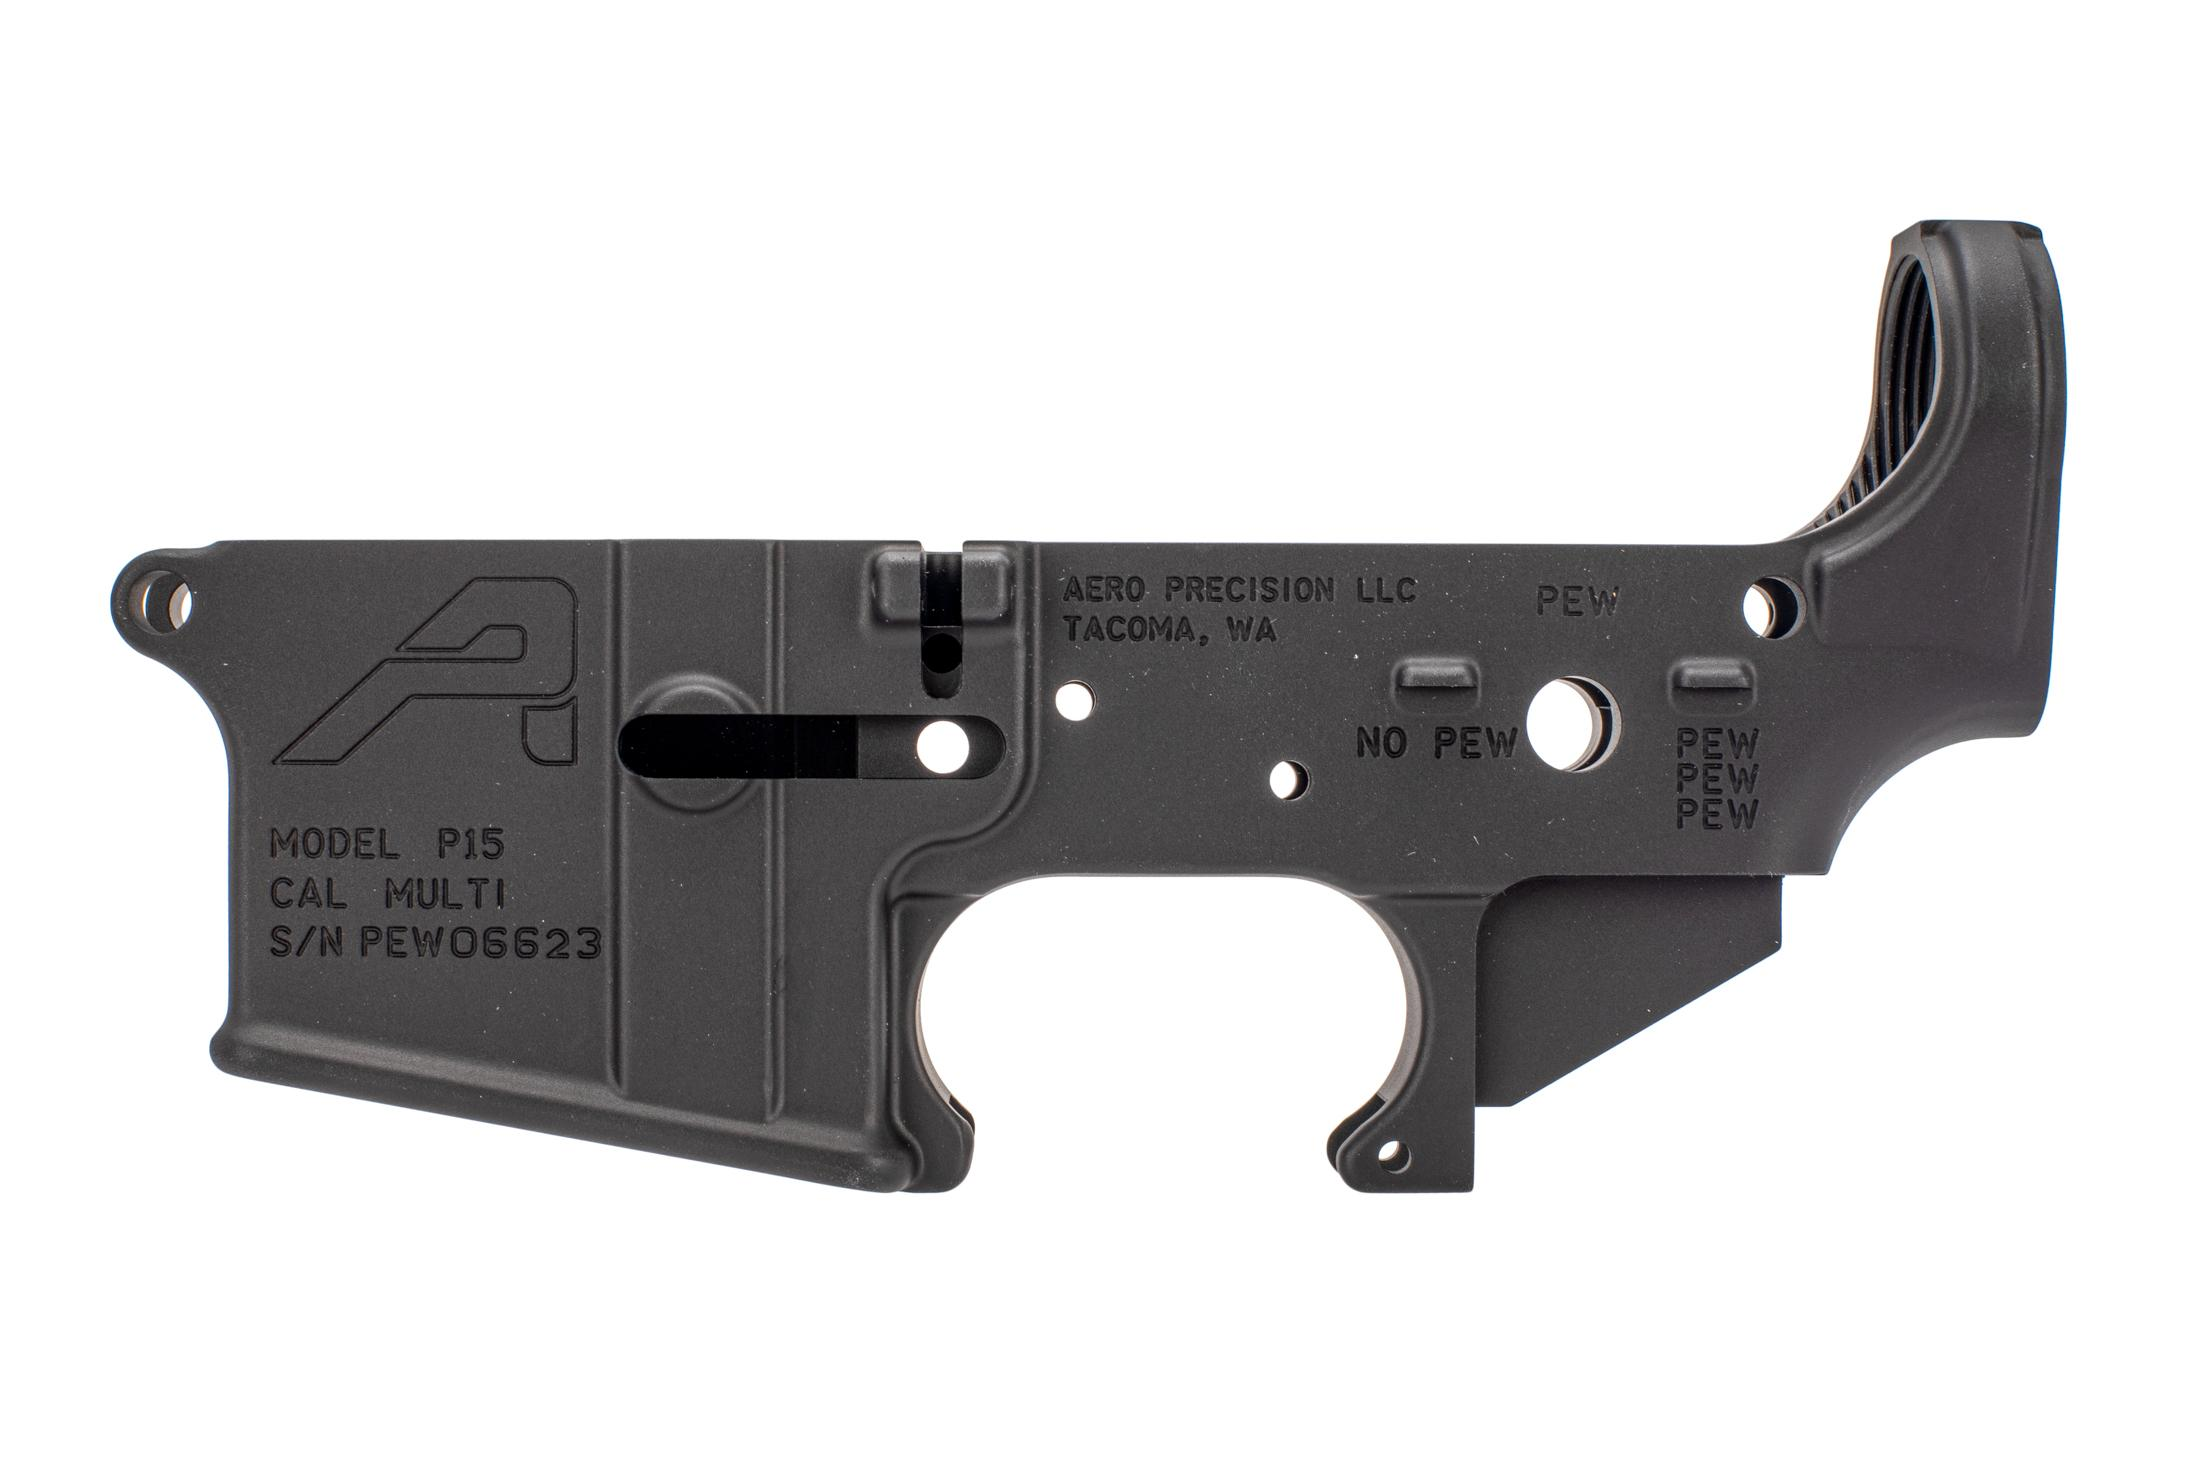 Aero stripped ar15 lower receiver special edition PEW engraved is multi-caliber engraved